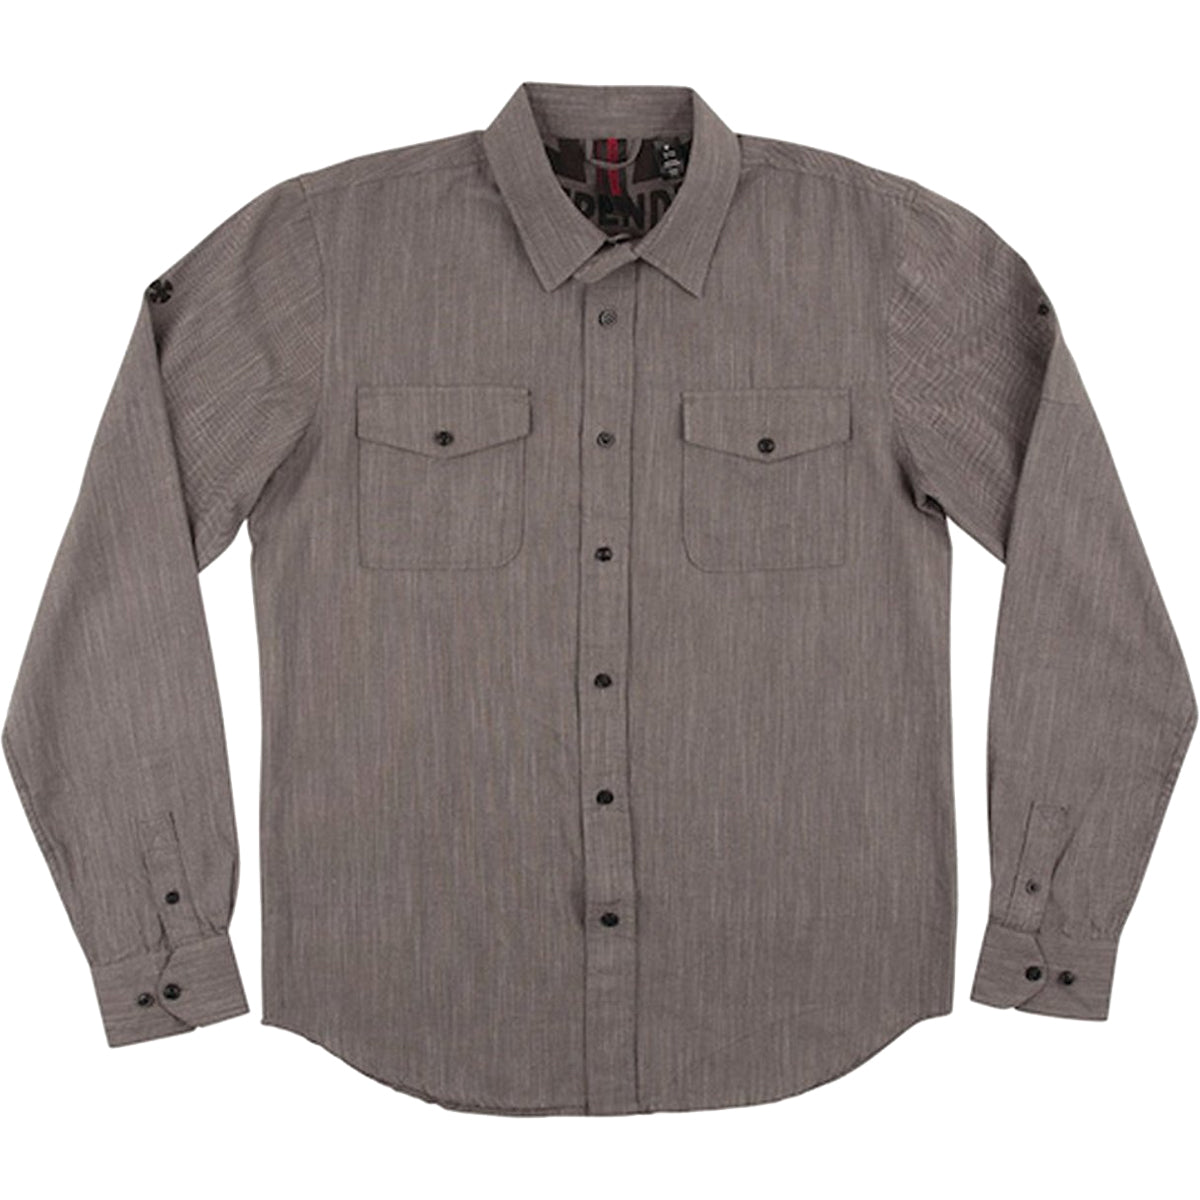 Independent Struggle Men's Button Up Long-Sleeve Shirts - Dark Grey Chambray